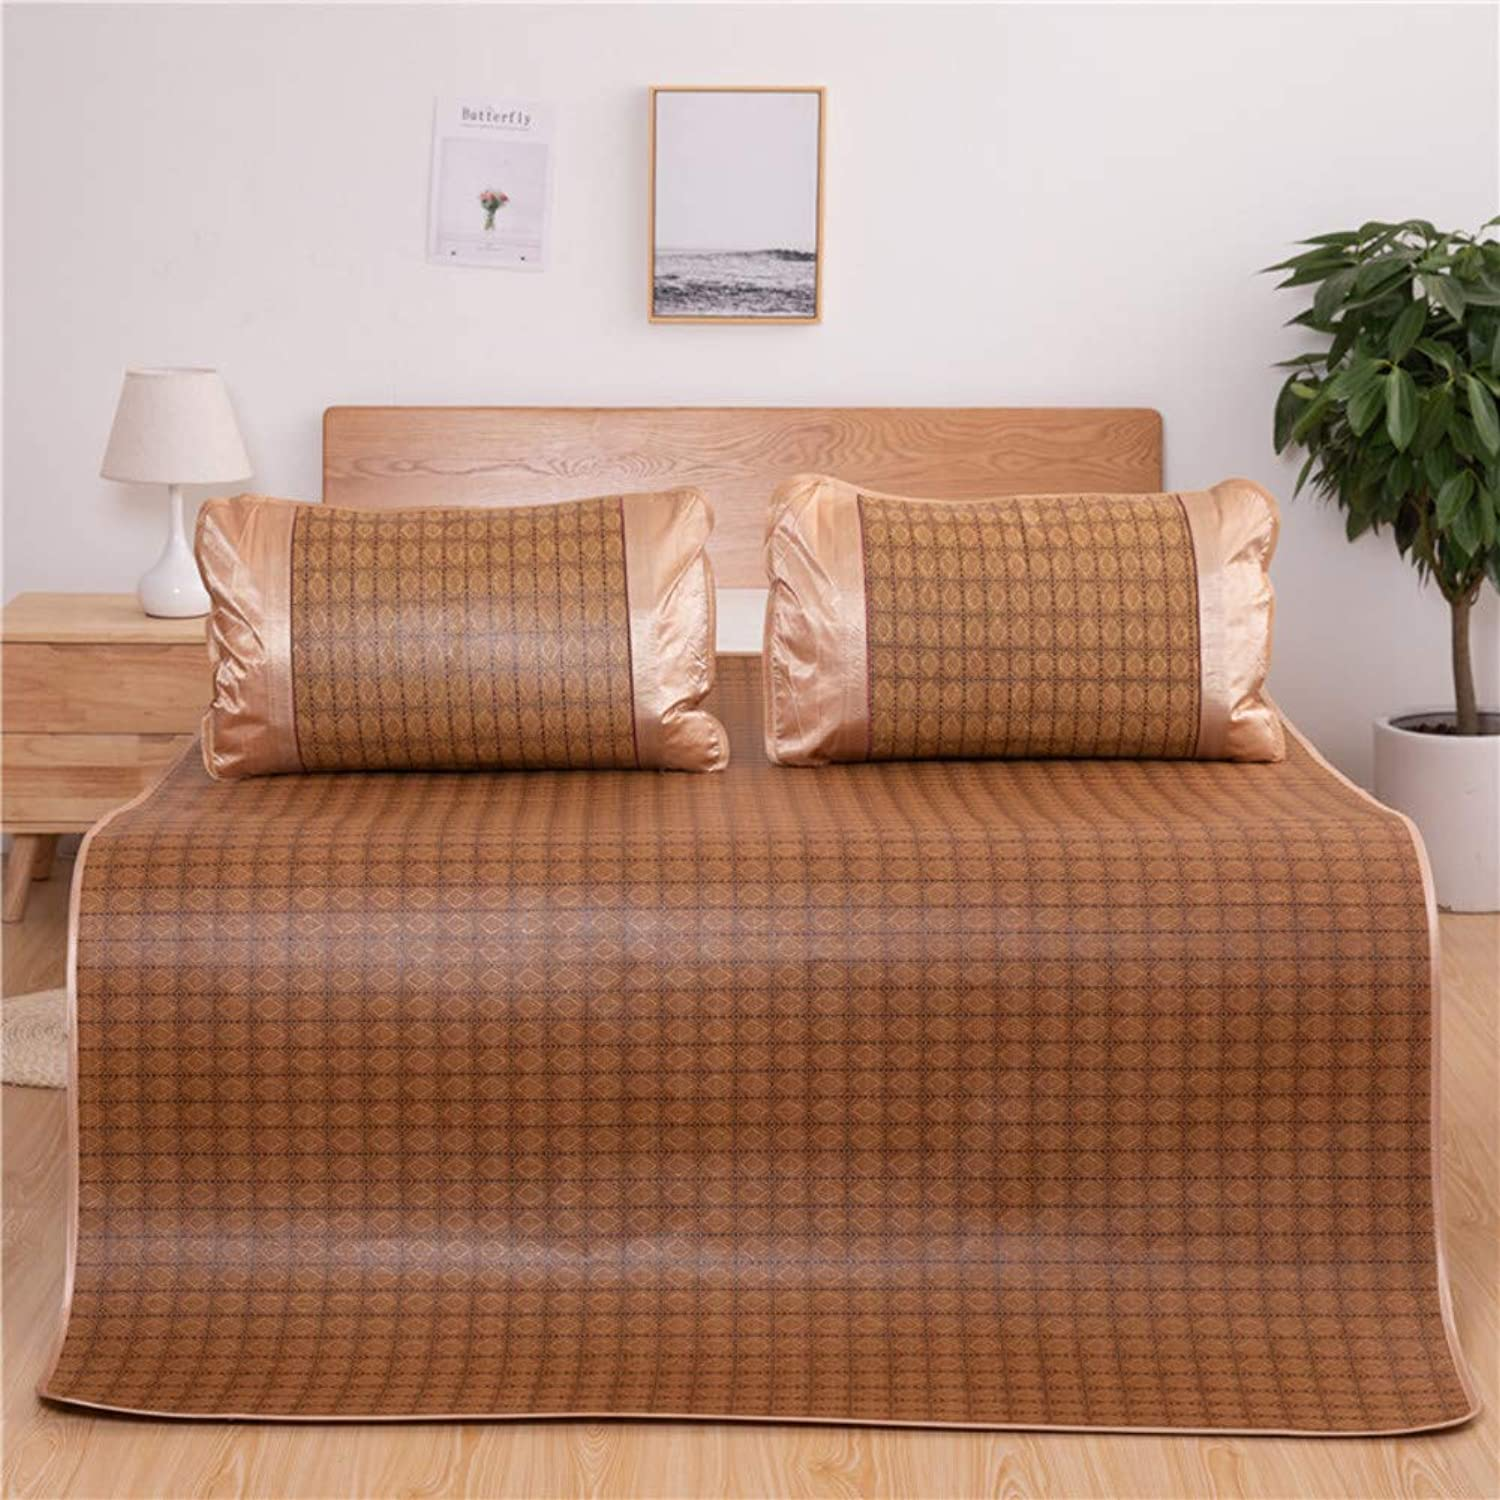 Cooling Summer Sleeping Mat, Rattan Mat, Foldable Tatami Mattress Durable Skin-Friendly Air Conditioning Mat Three-Piece-b 90x200cm(35x79inch)